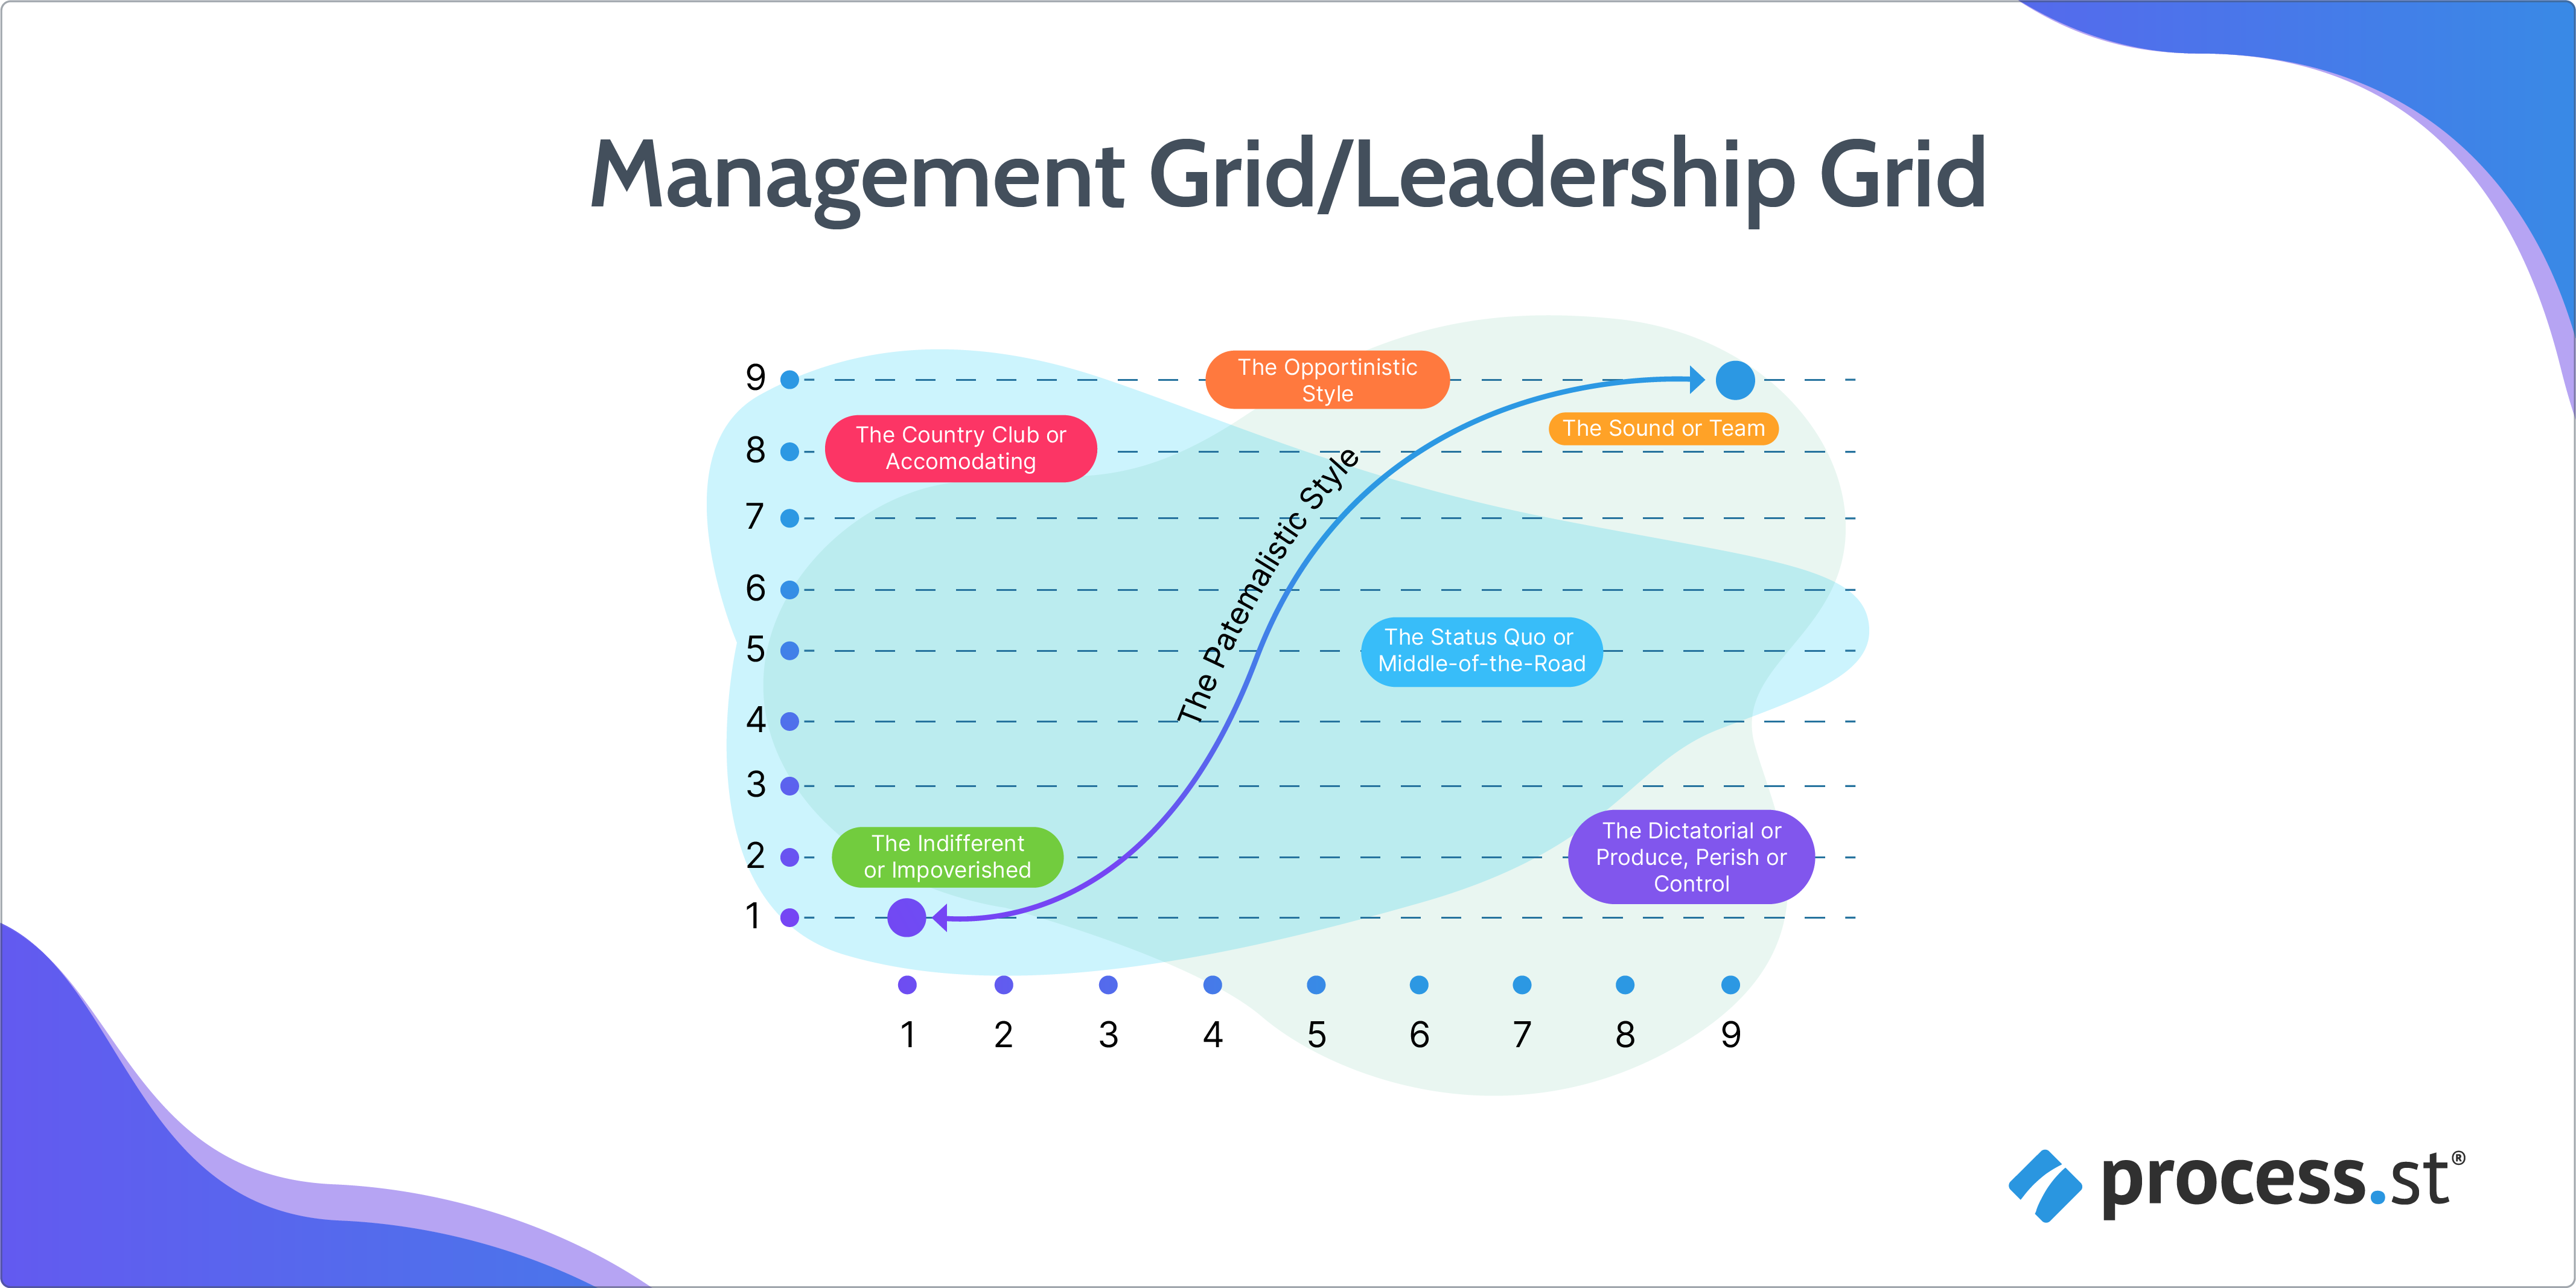 Managerial Grid model